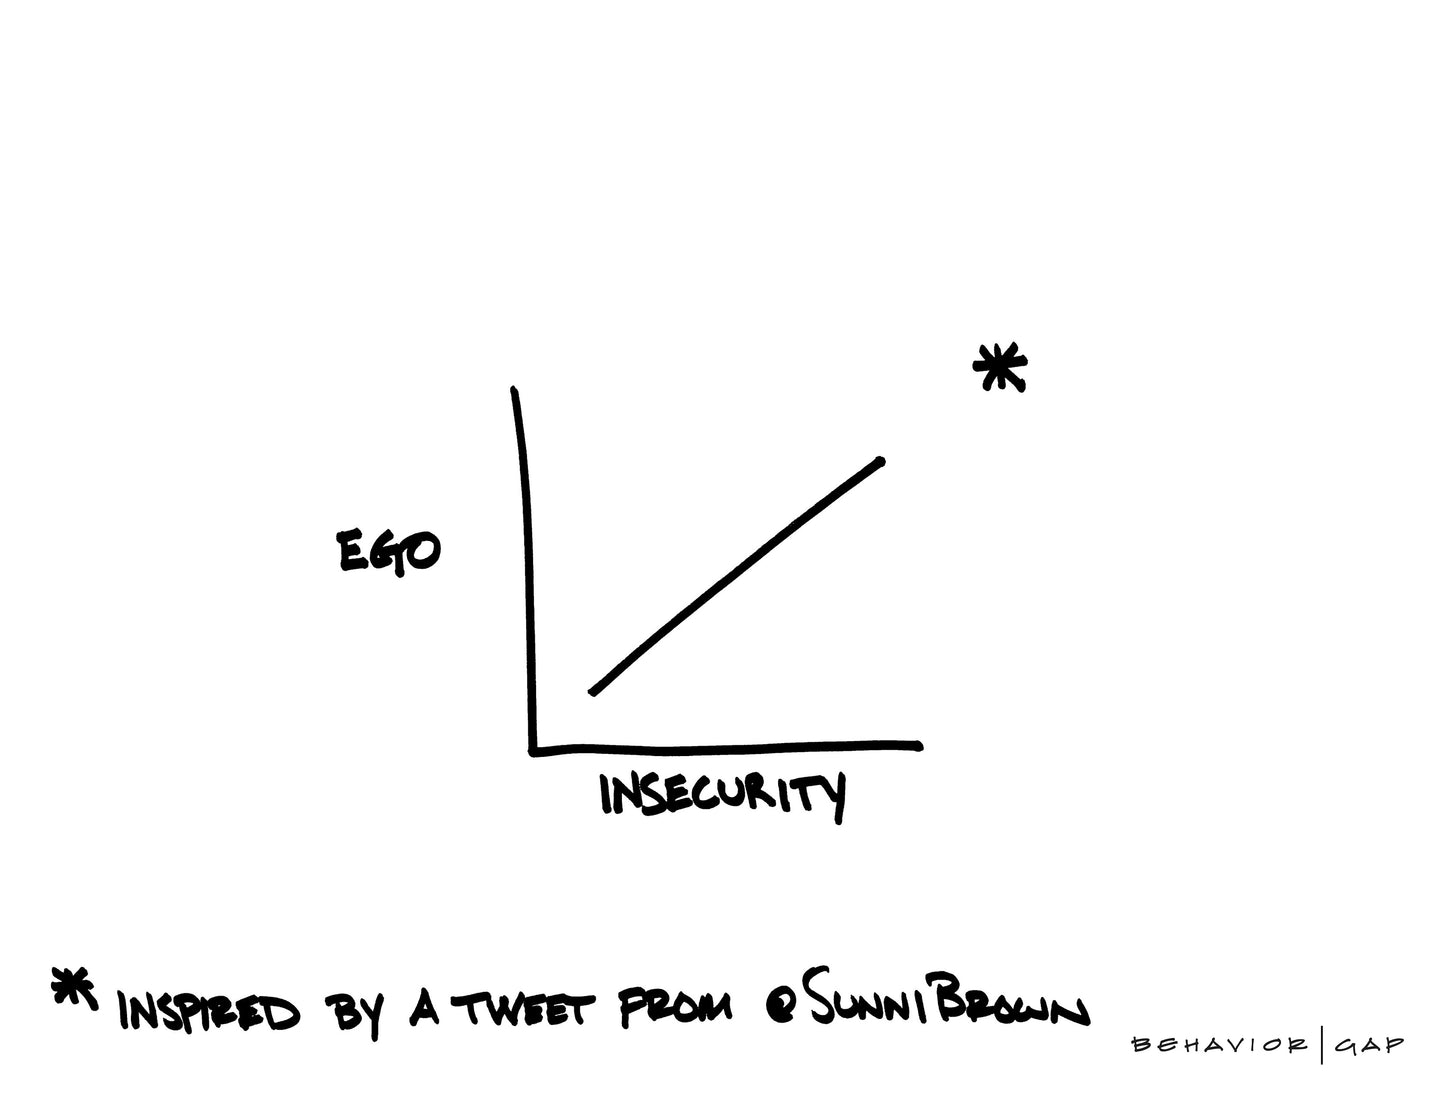 Ego Insecurity